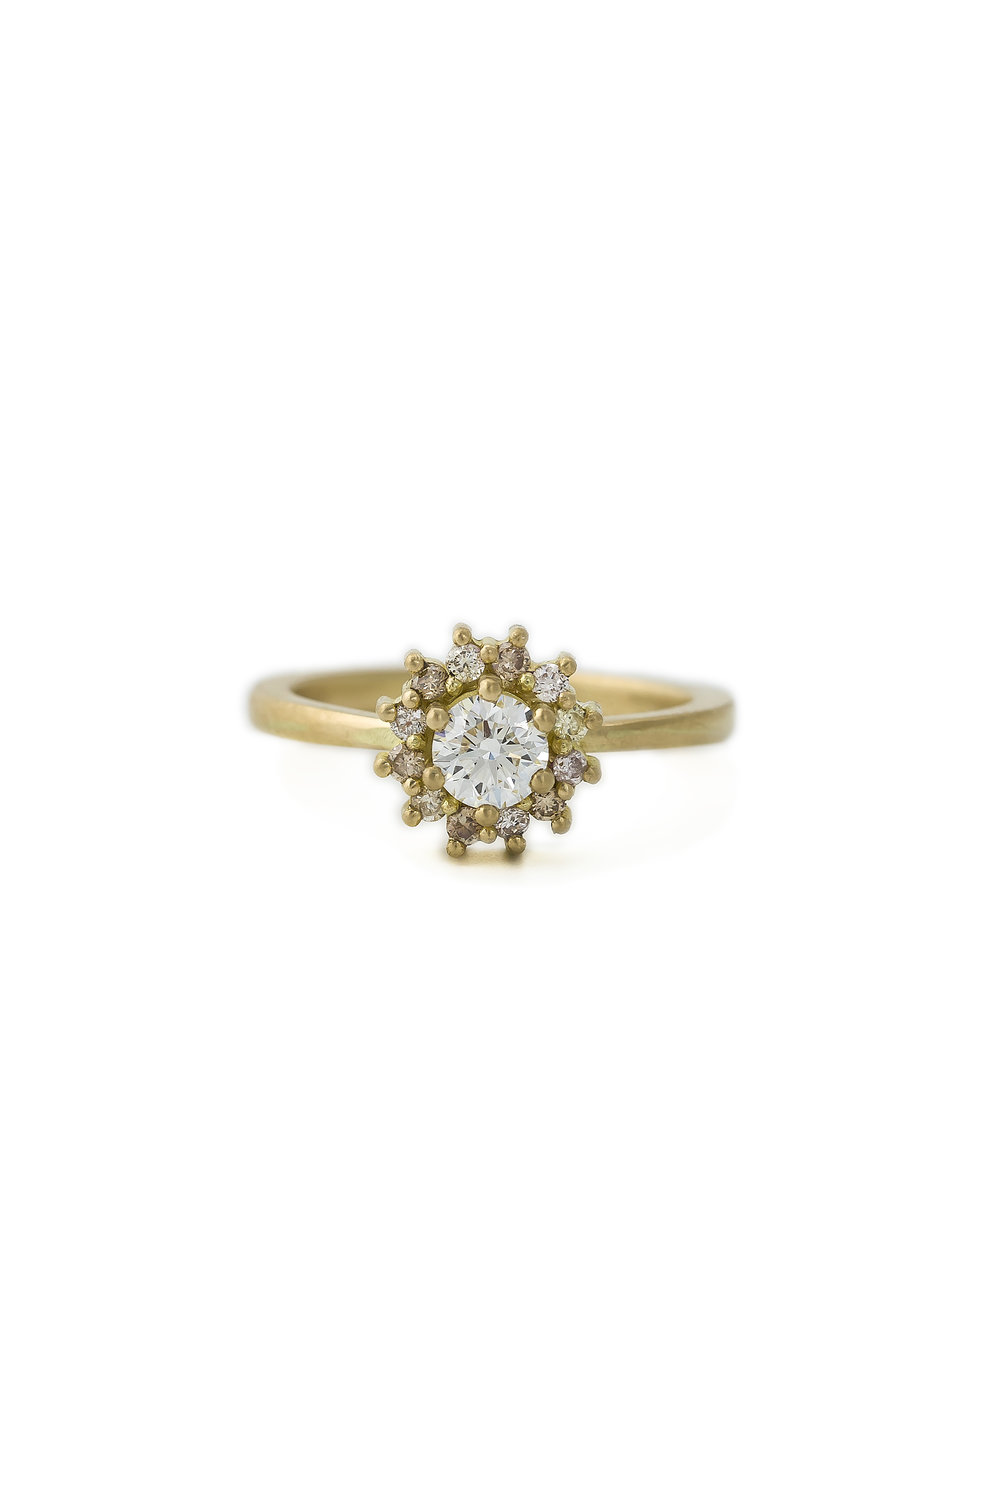 Multi coloured diamond halo ring in yellow gold, £6100